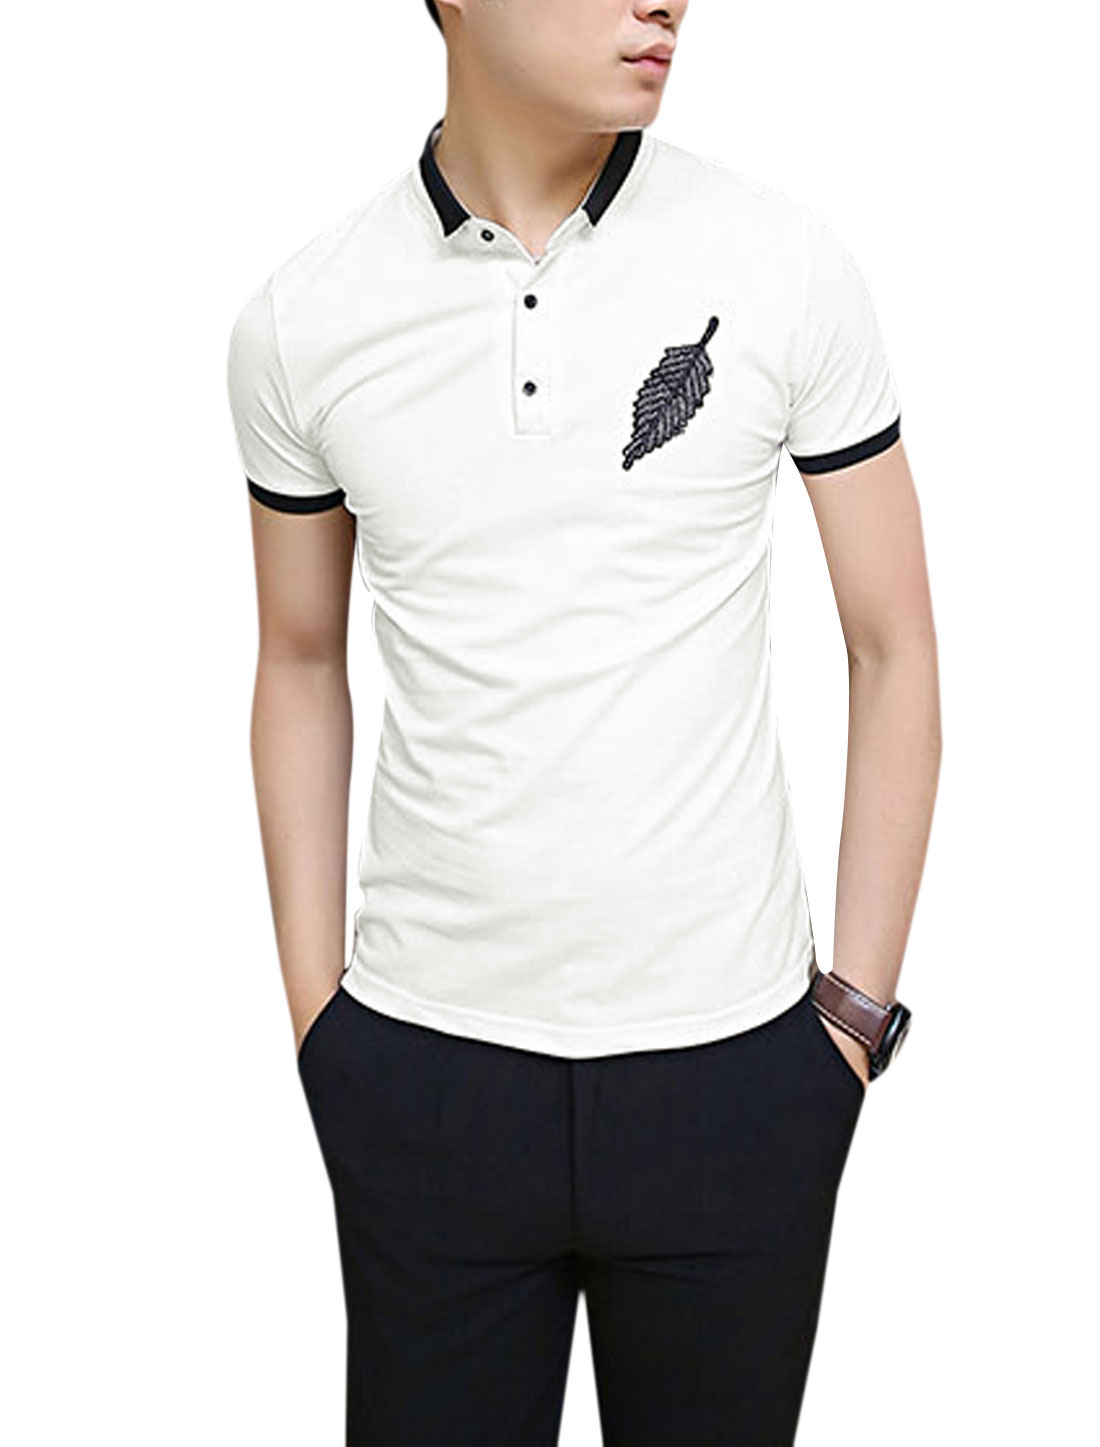 Men Convertible Collar Leaf Embroidery 1/4 Placket Chic Polo Shirt White M